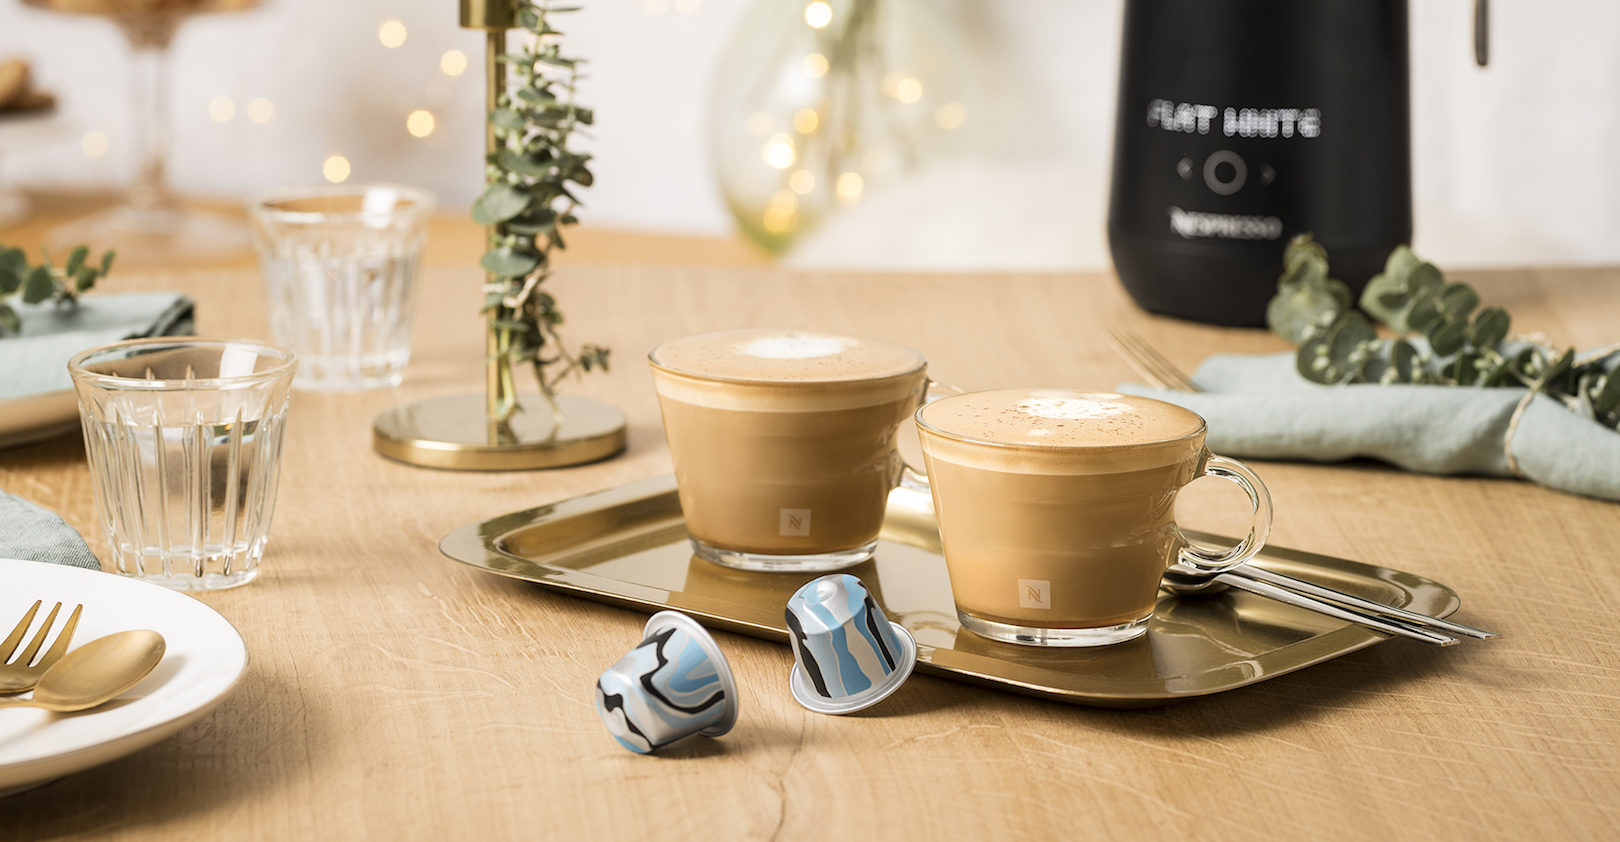 The ultimate gift guide for coffee lovers